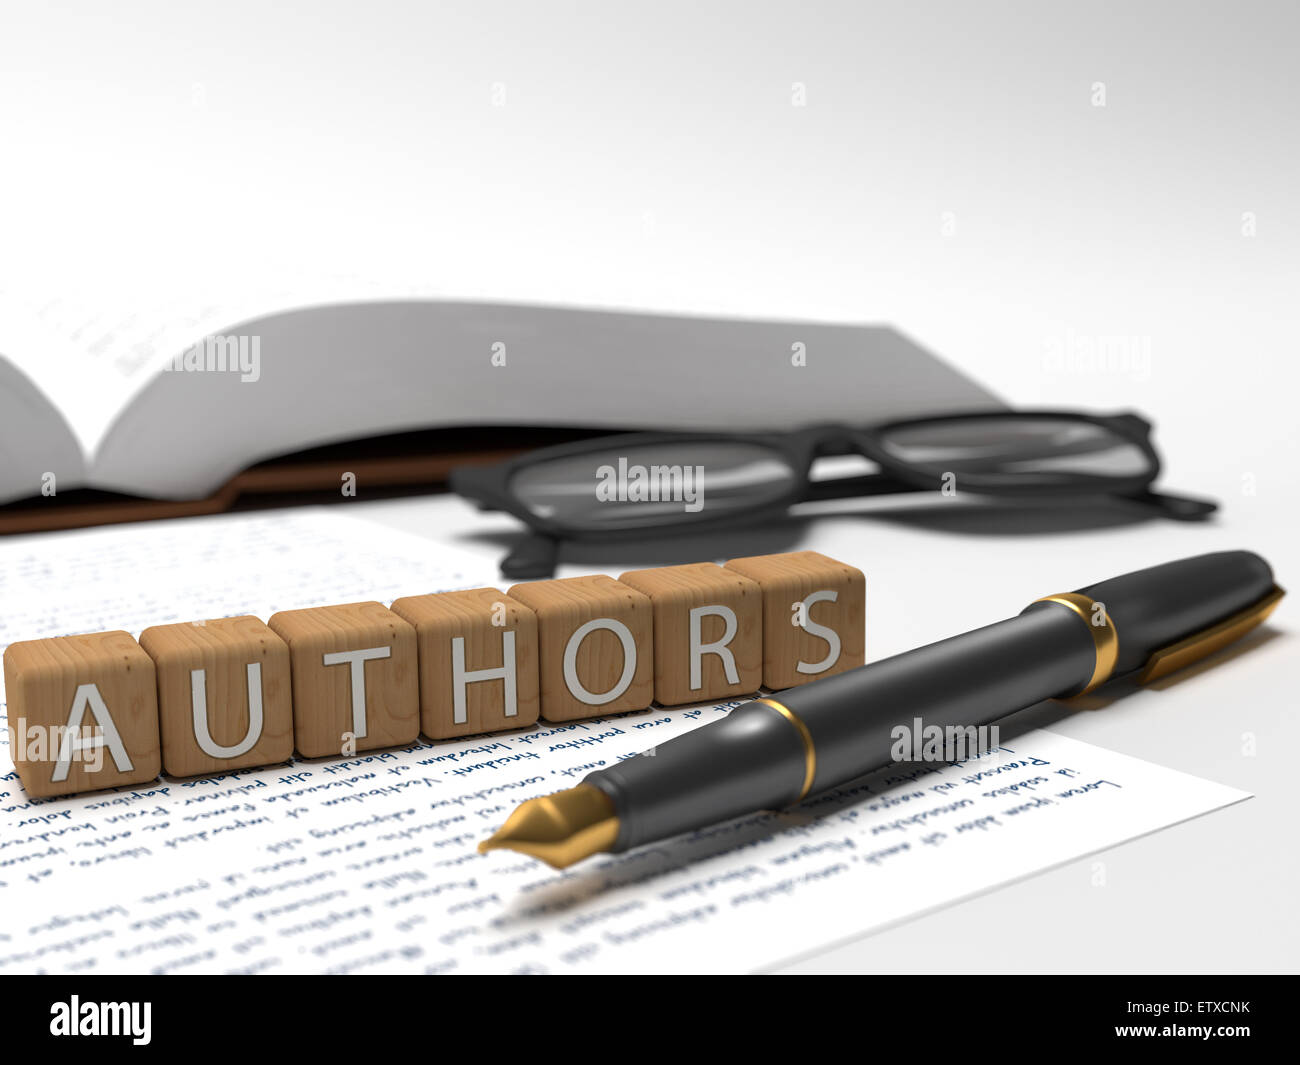 Authors - dices containing the word authors, a book, glasses and a fountain pen. - Stock Image